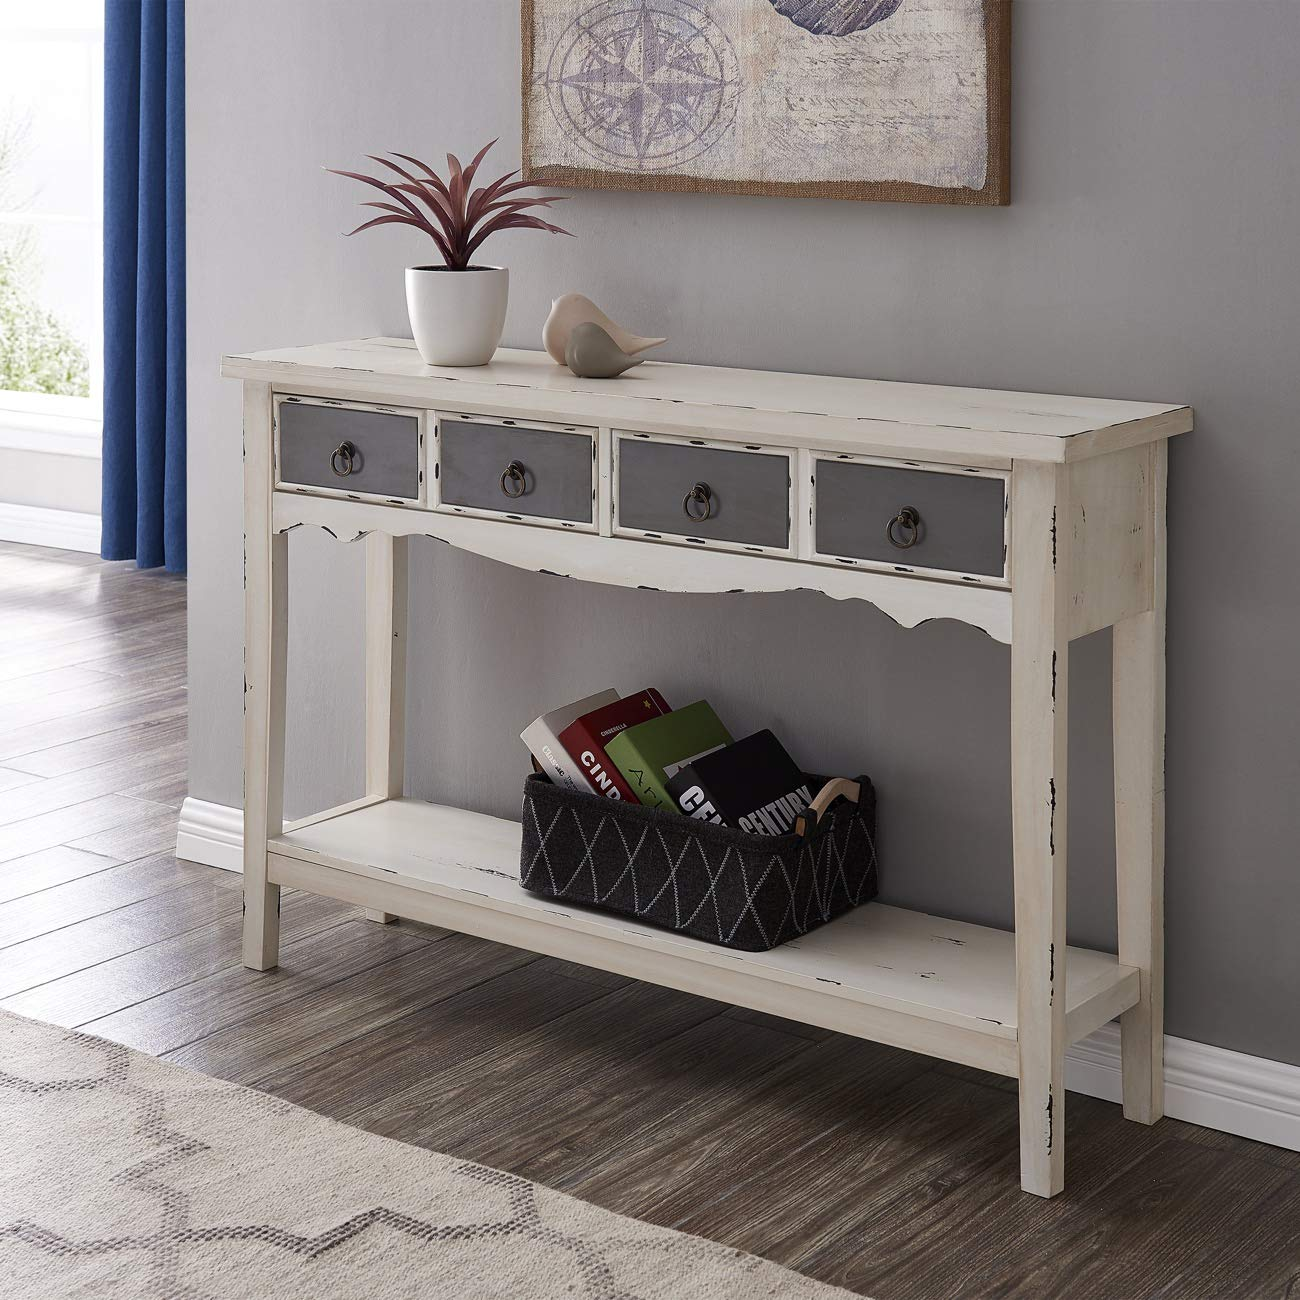 BELLEZE Hand Painted Distressed Antique White Finish Accent Console Table by Belleze